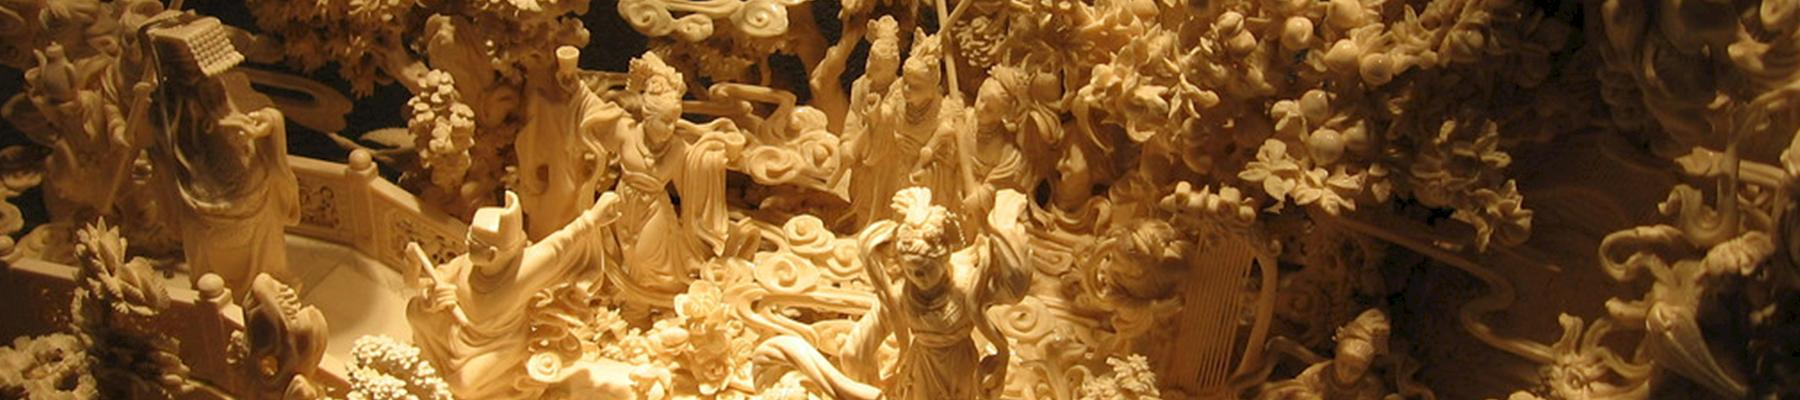 Ivory products for sale in China © Vince42 / Generic CC 2.0